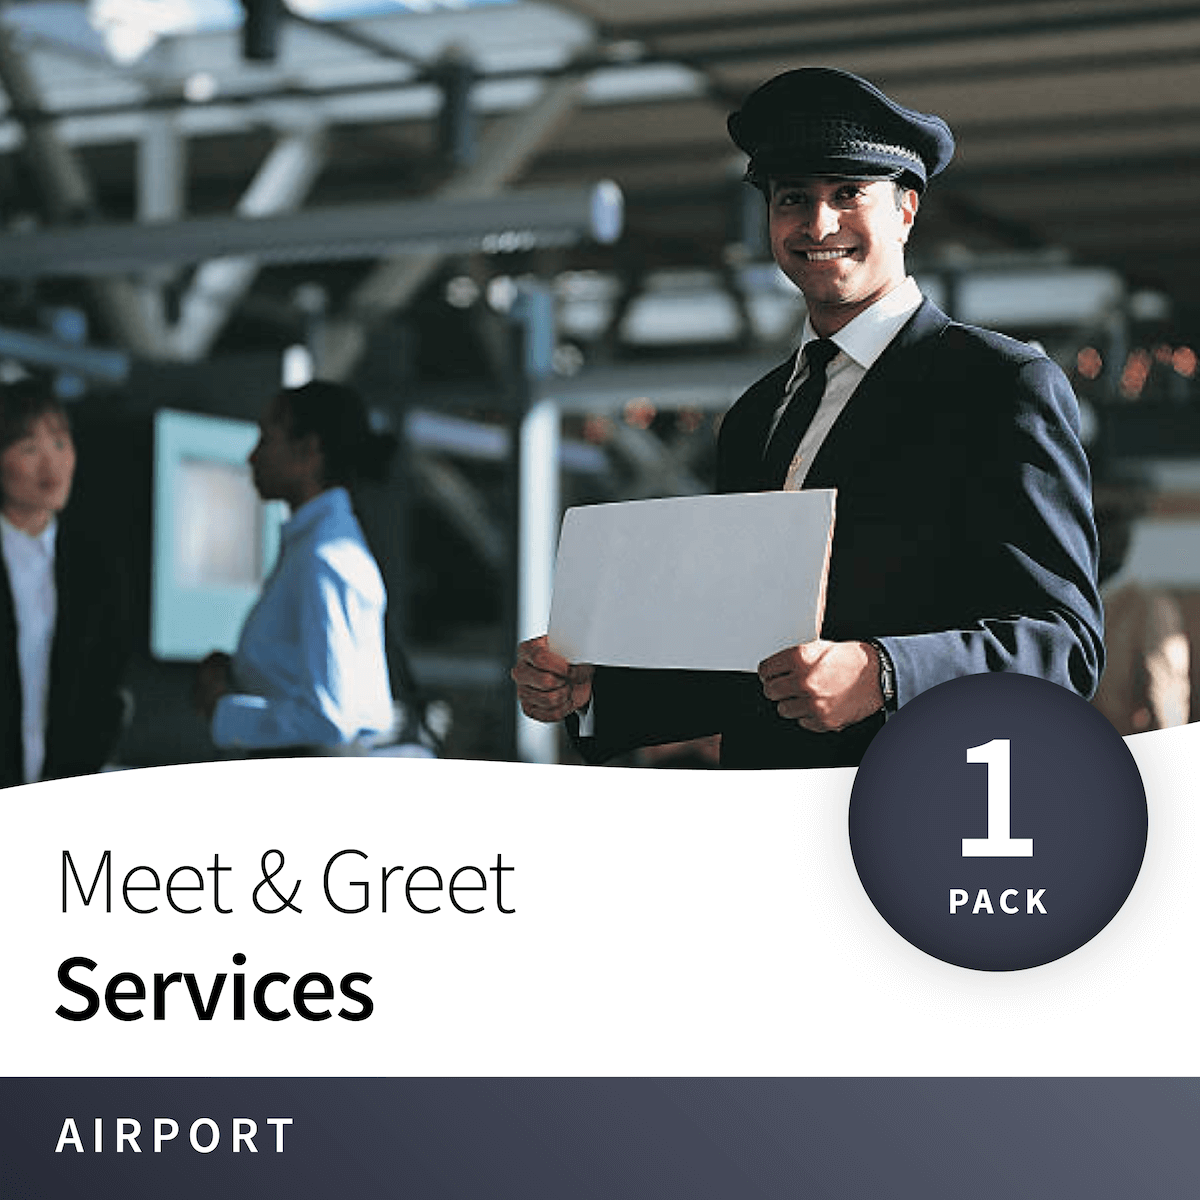 Meet & Greet Services 6